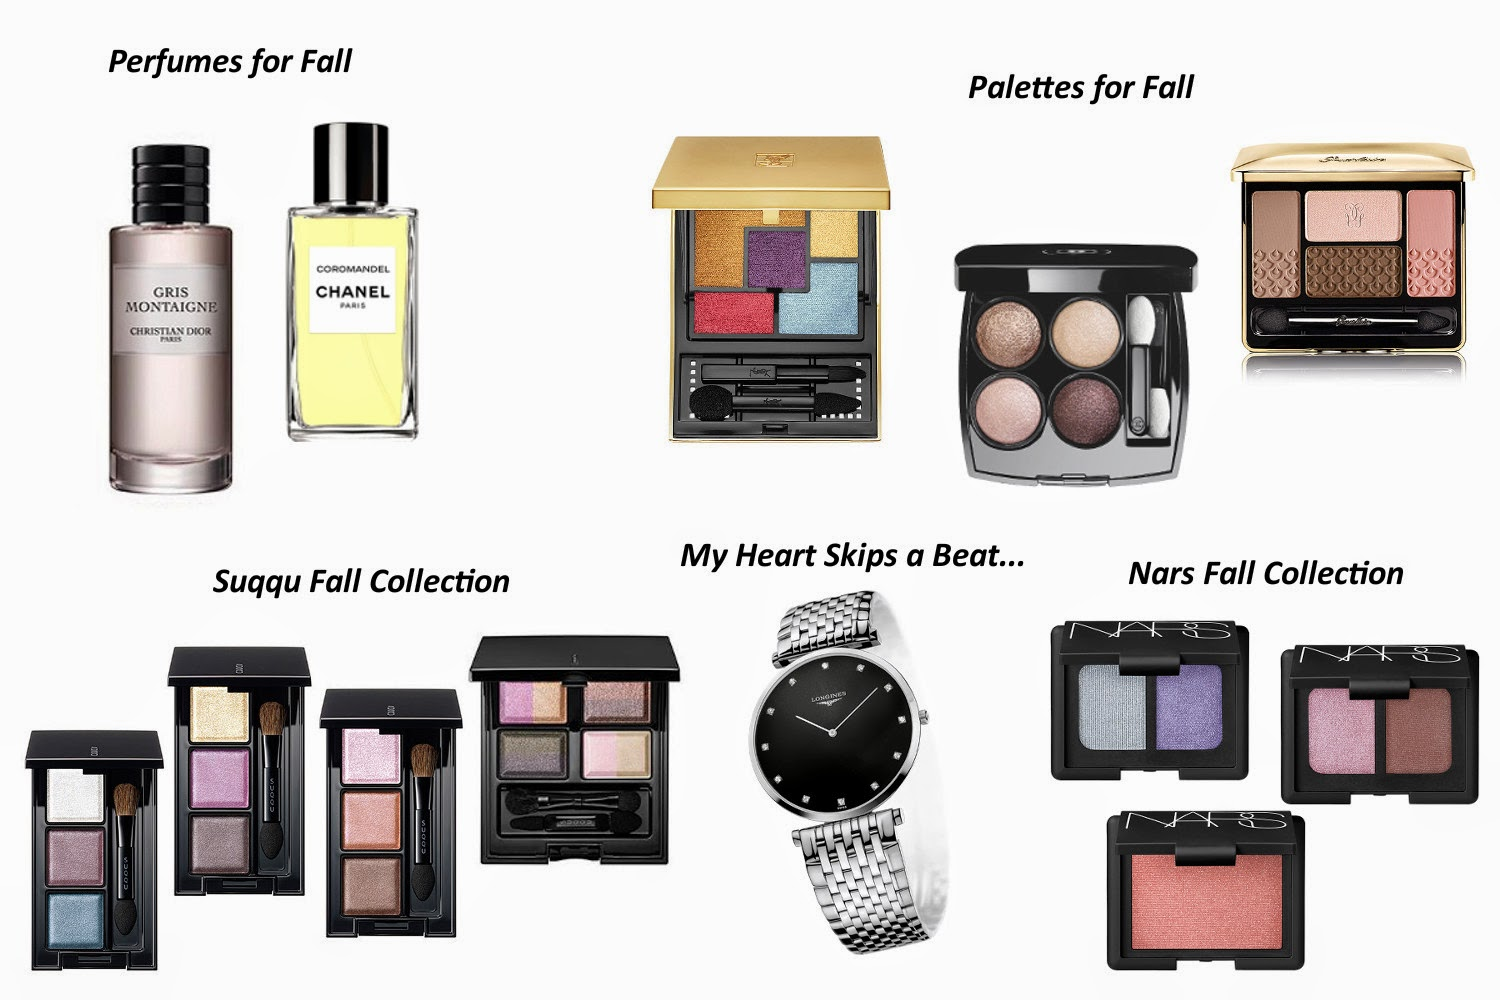 Gris Montaigne Christian Dior current wish list, birthday edition | color me loud